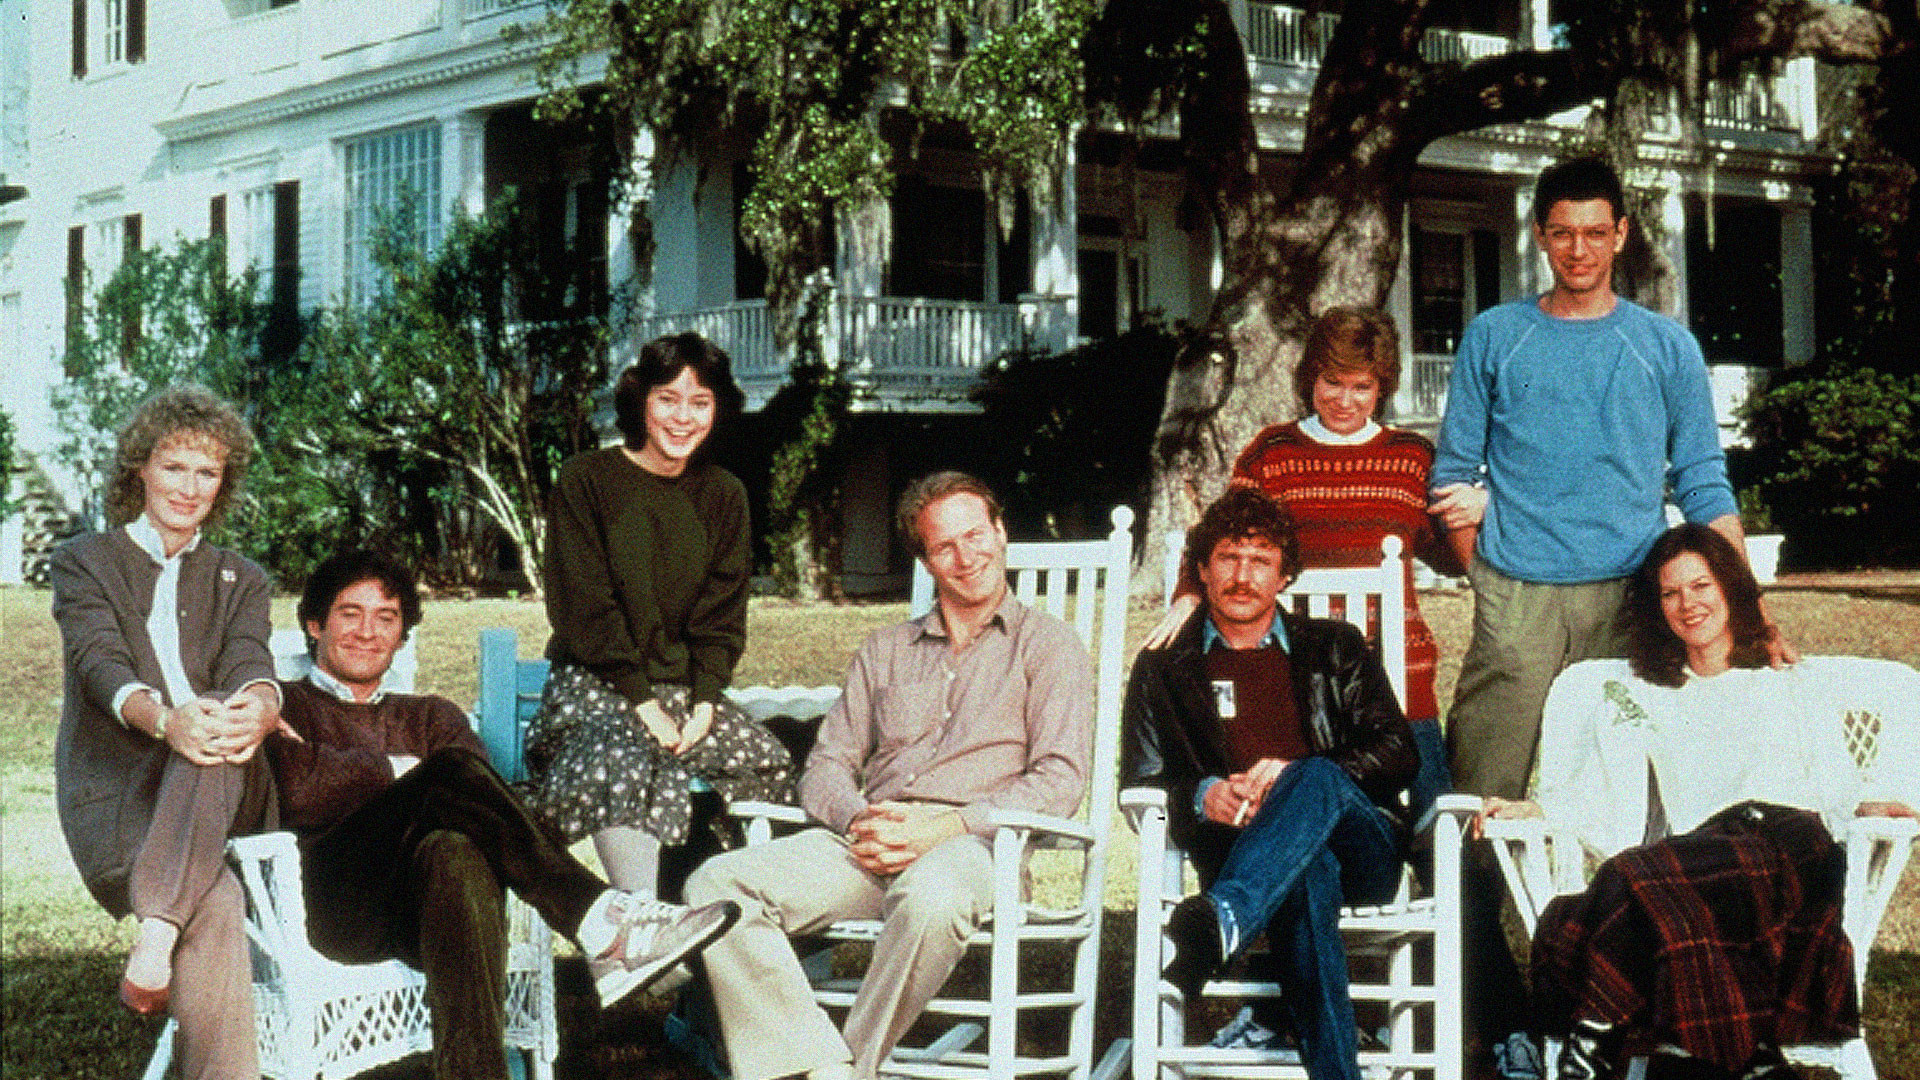 an analysis of the symbolism in the movie the big chill by lawrence kasdan An analysis of the symbolism in the movie the big chill by lawrence kasdan от | март 30th, 2018 | без рубрики |.